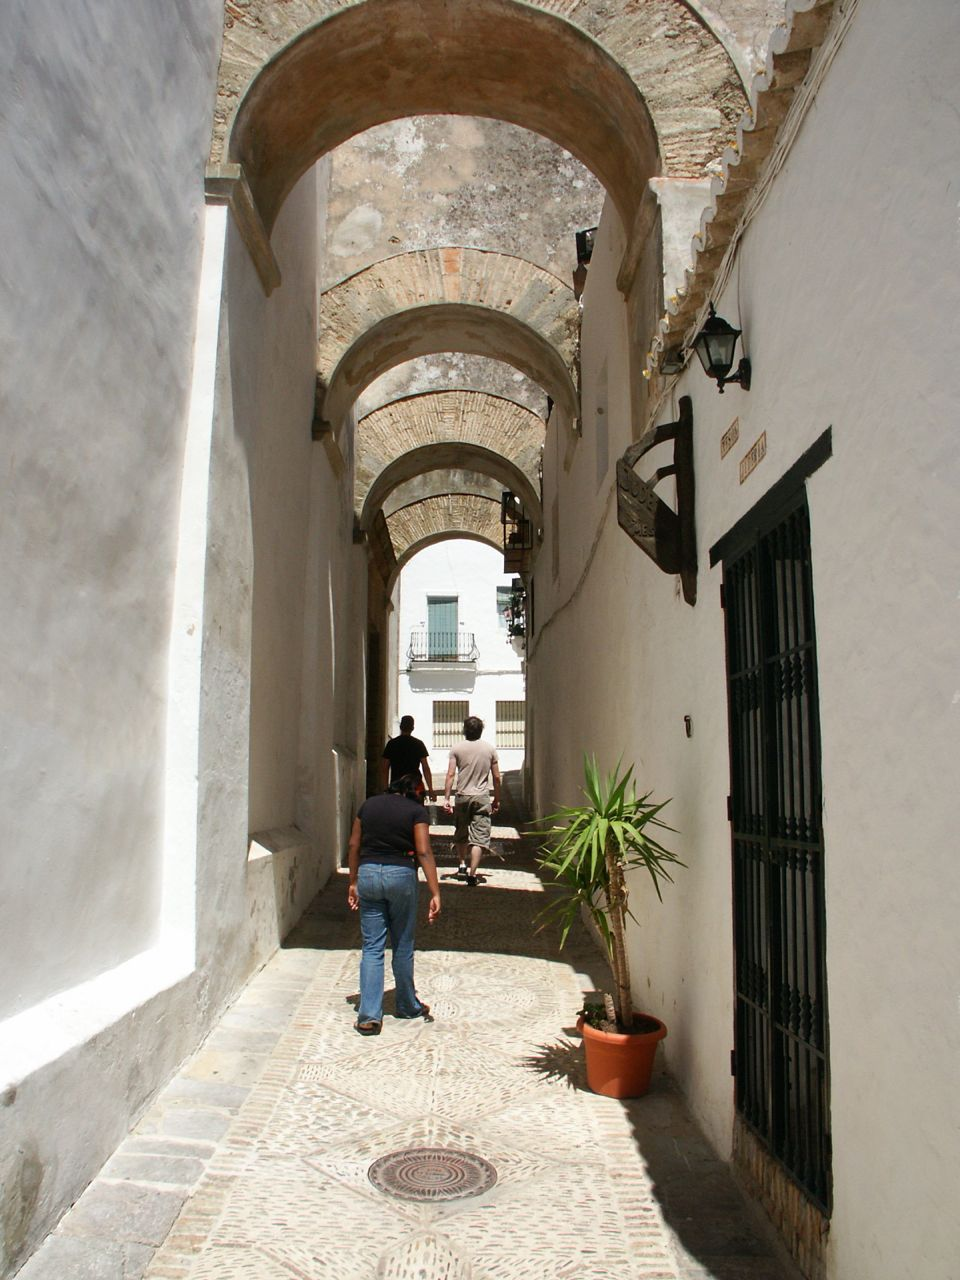 The Alley Way is thin and cramped